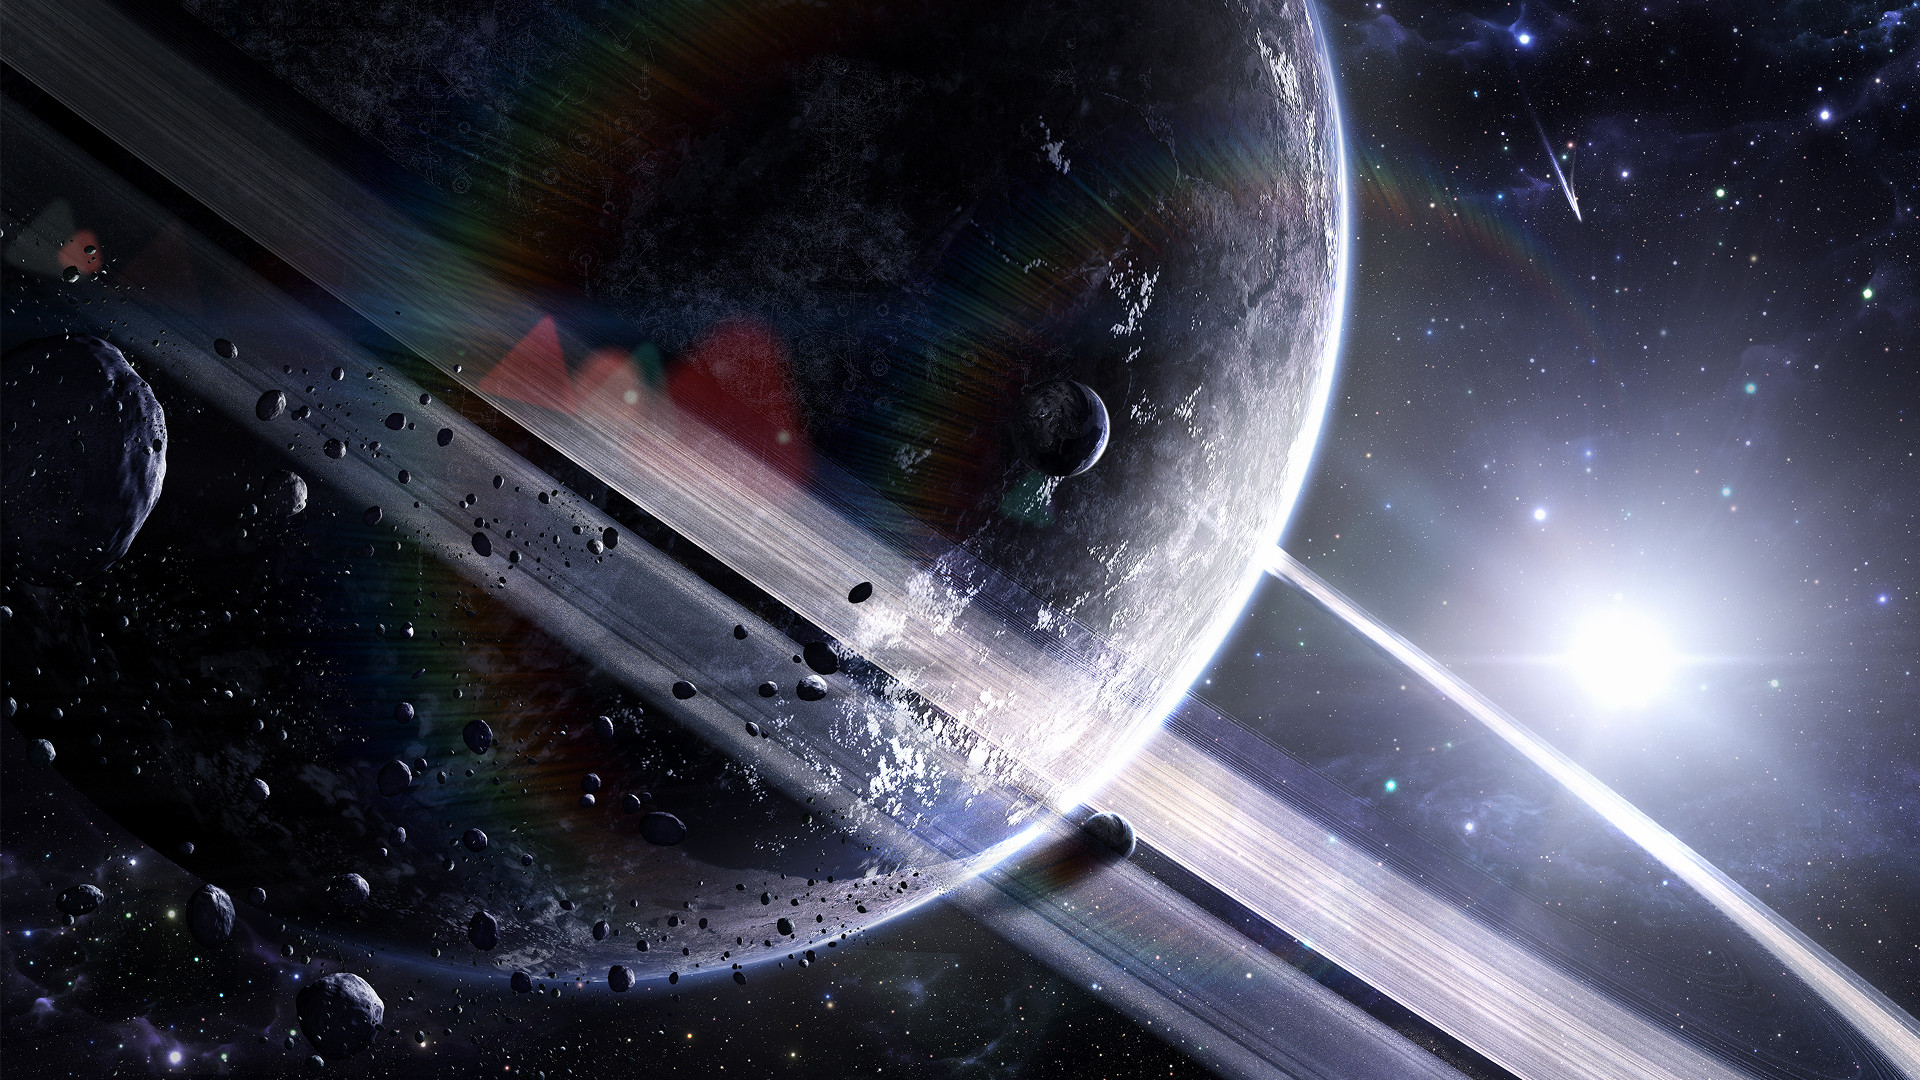 Cool Space Background Wallpapers background